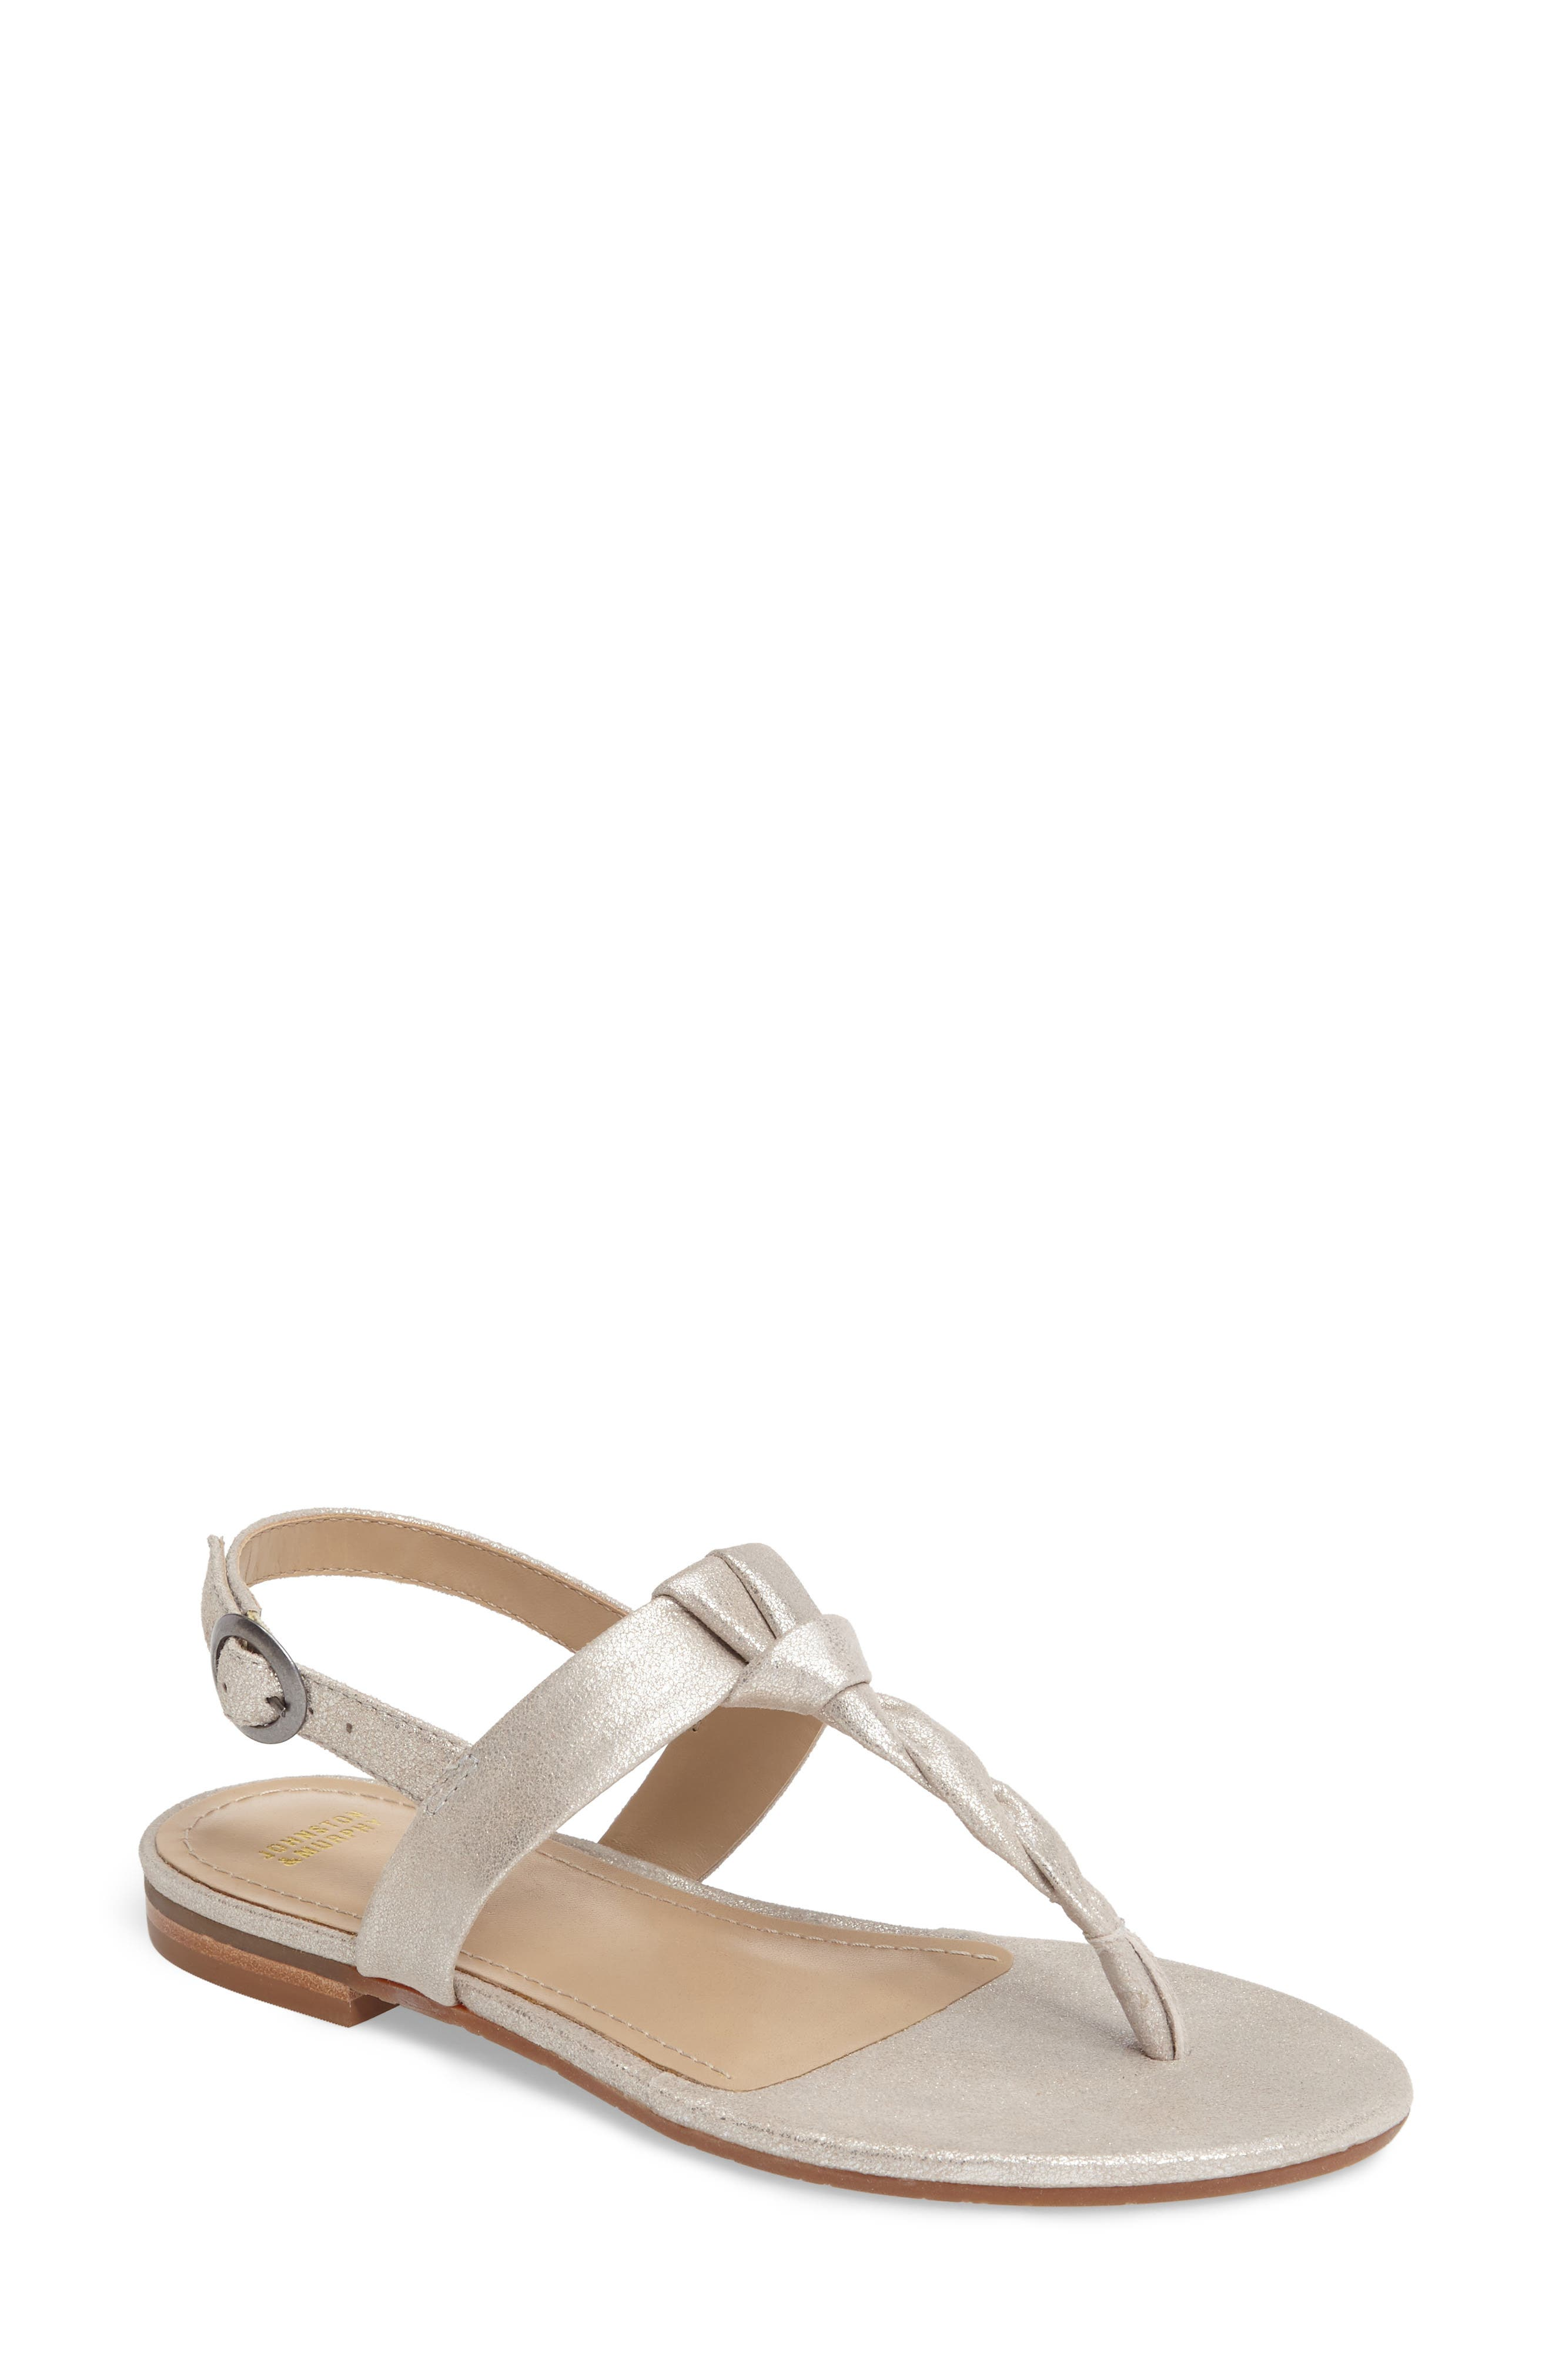 Holly Twisted T-Strap Sandal,                             Main thumbnail 2, color,